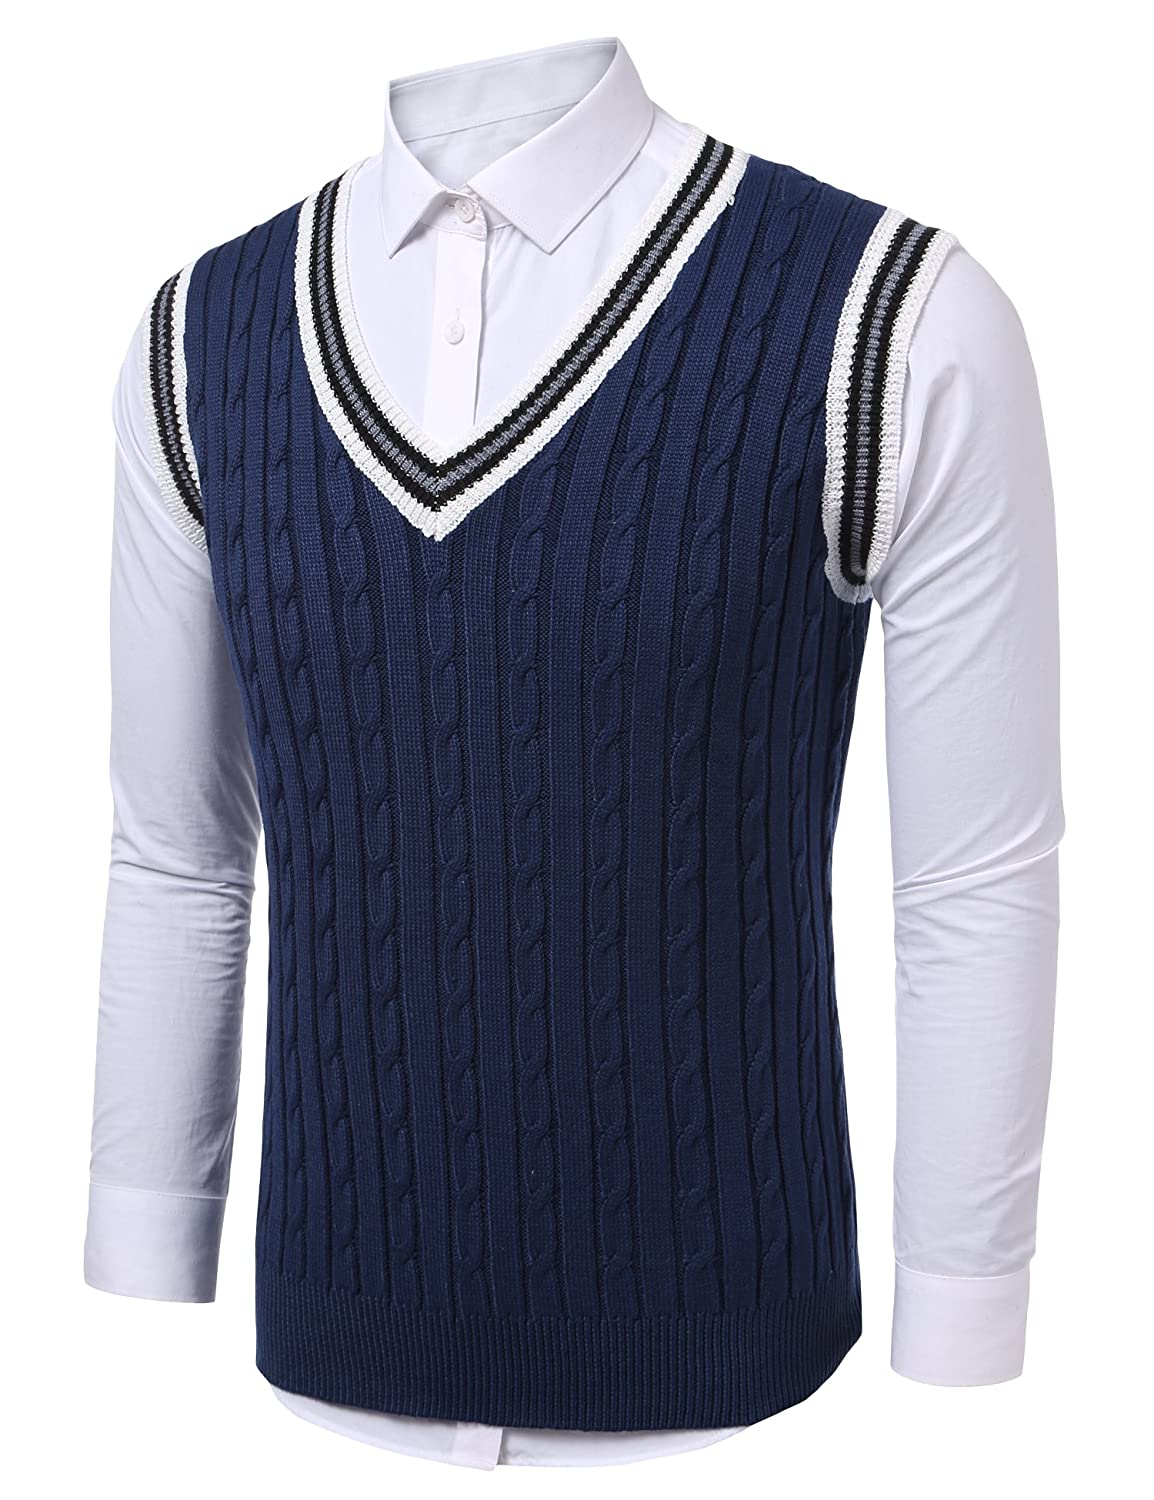 Men's Vintage Christmas Gift Ideas Coofandy Mens Casual Knitted Sweater Slim Fit Pullover Cable Sweater Links-Vest $27.99 AT vintagedancer.com